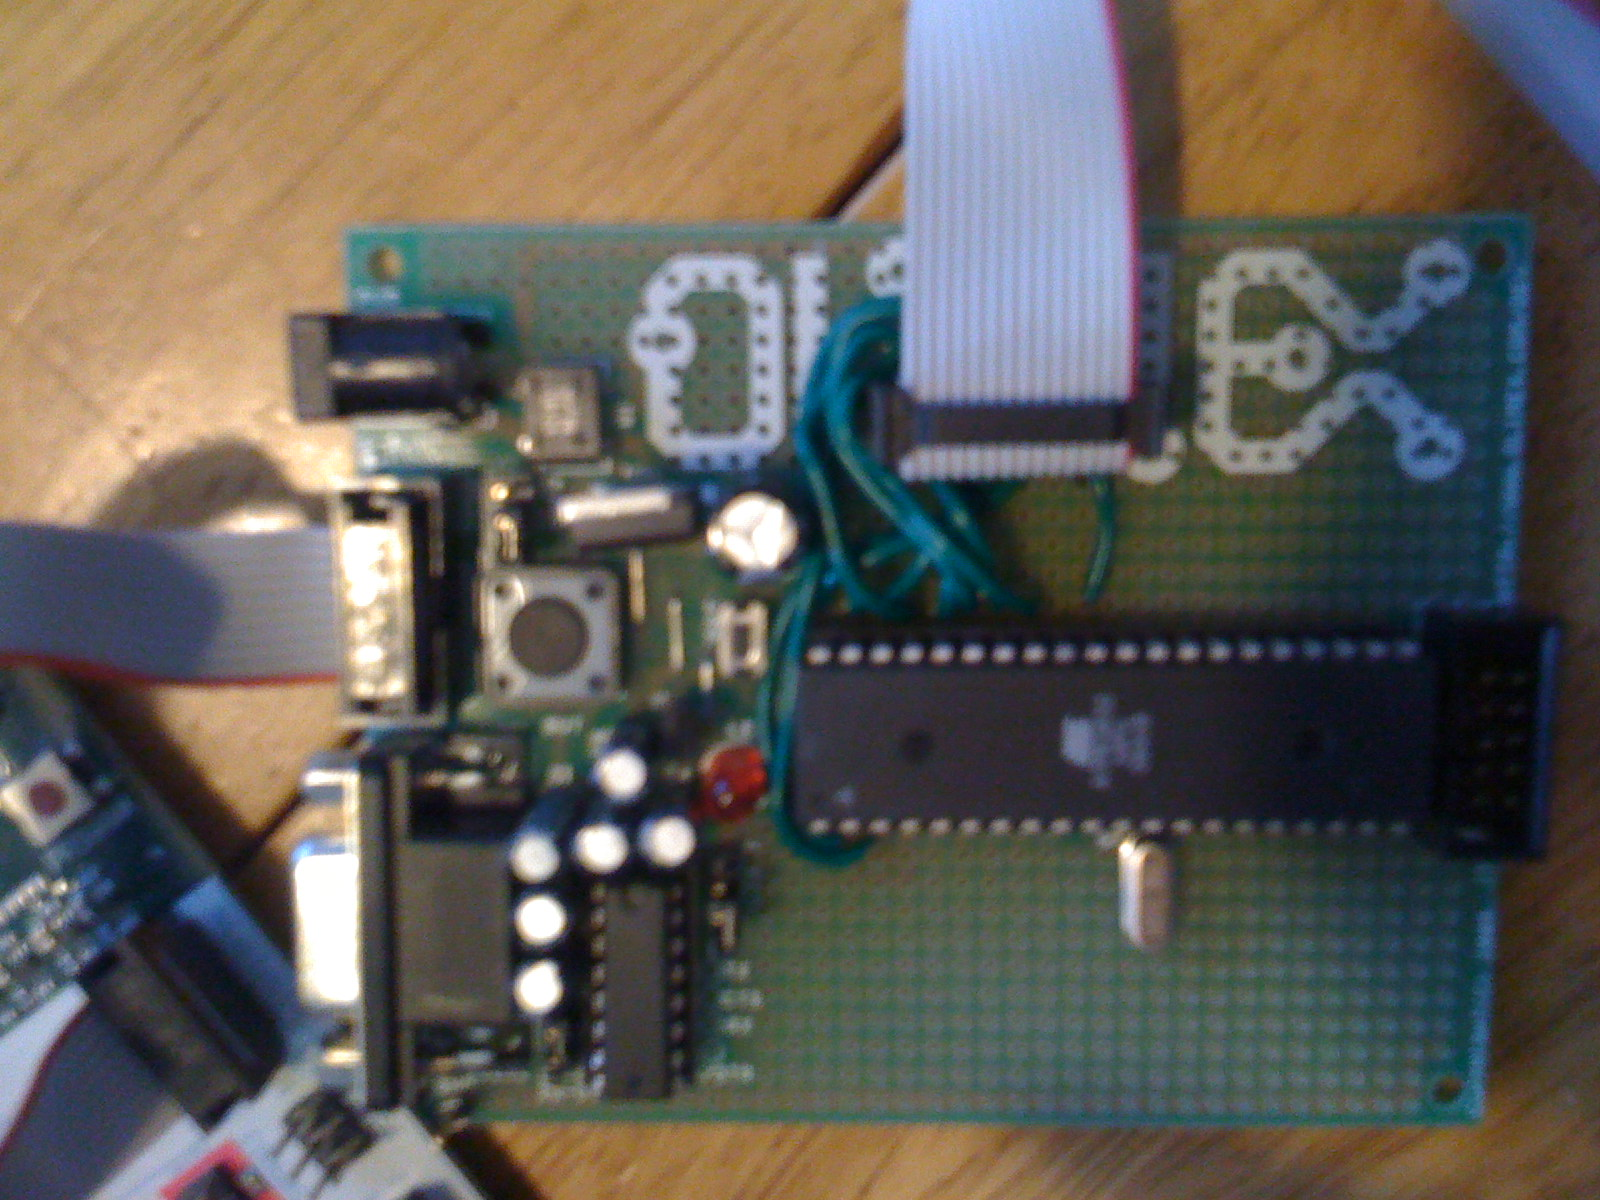 How To Read Rc Servo Pulses With An Avr Atmega32 And Final Board Motor Control By Using Microcontroller Board1